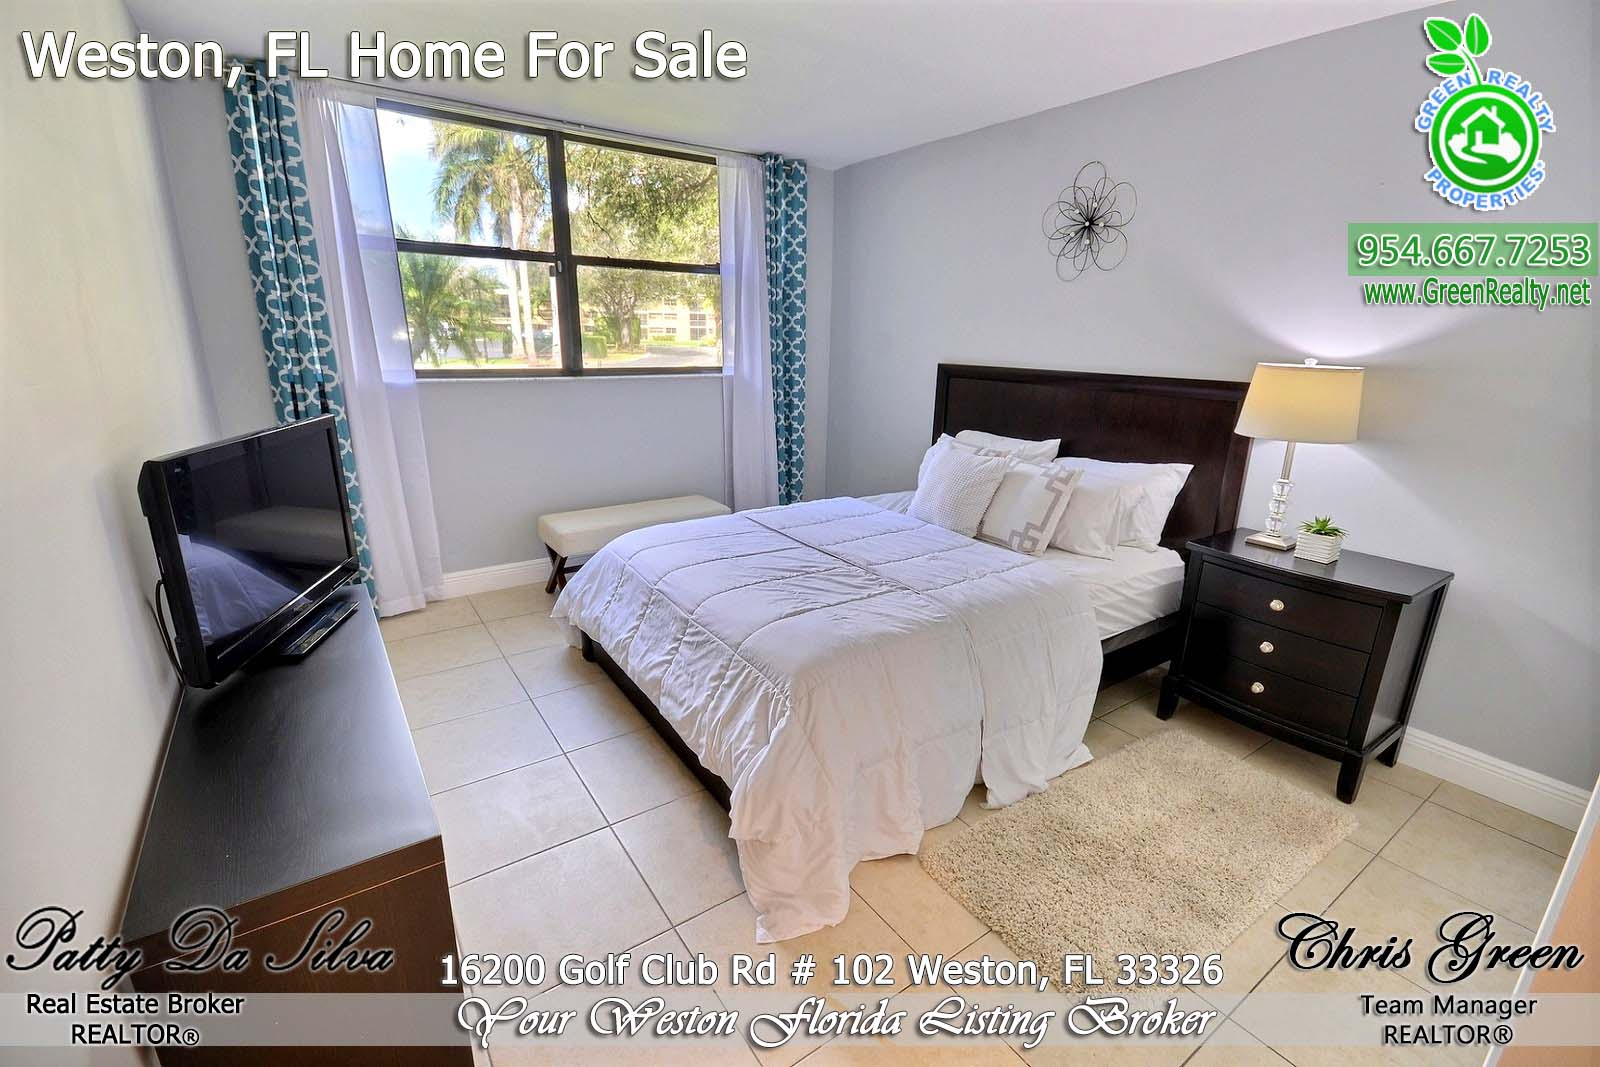 17 16200 Golf Club Rd, Unit 102, Weston FL 33326 (16)